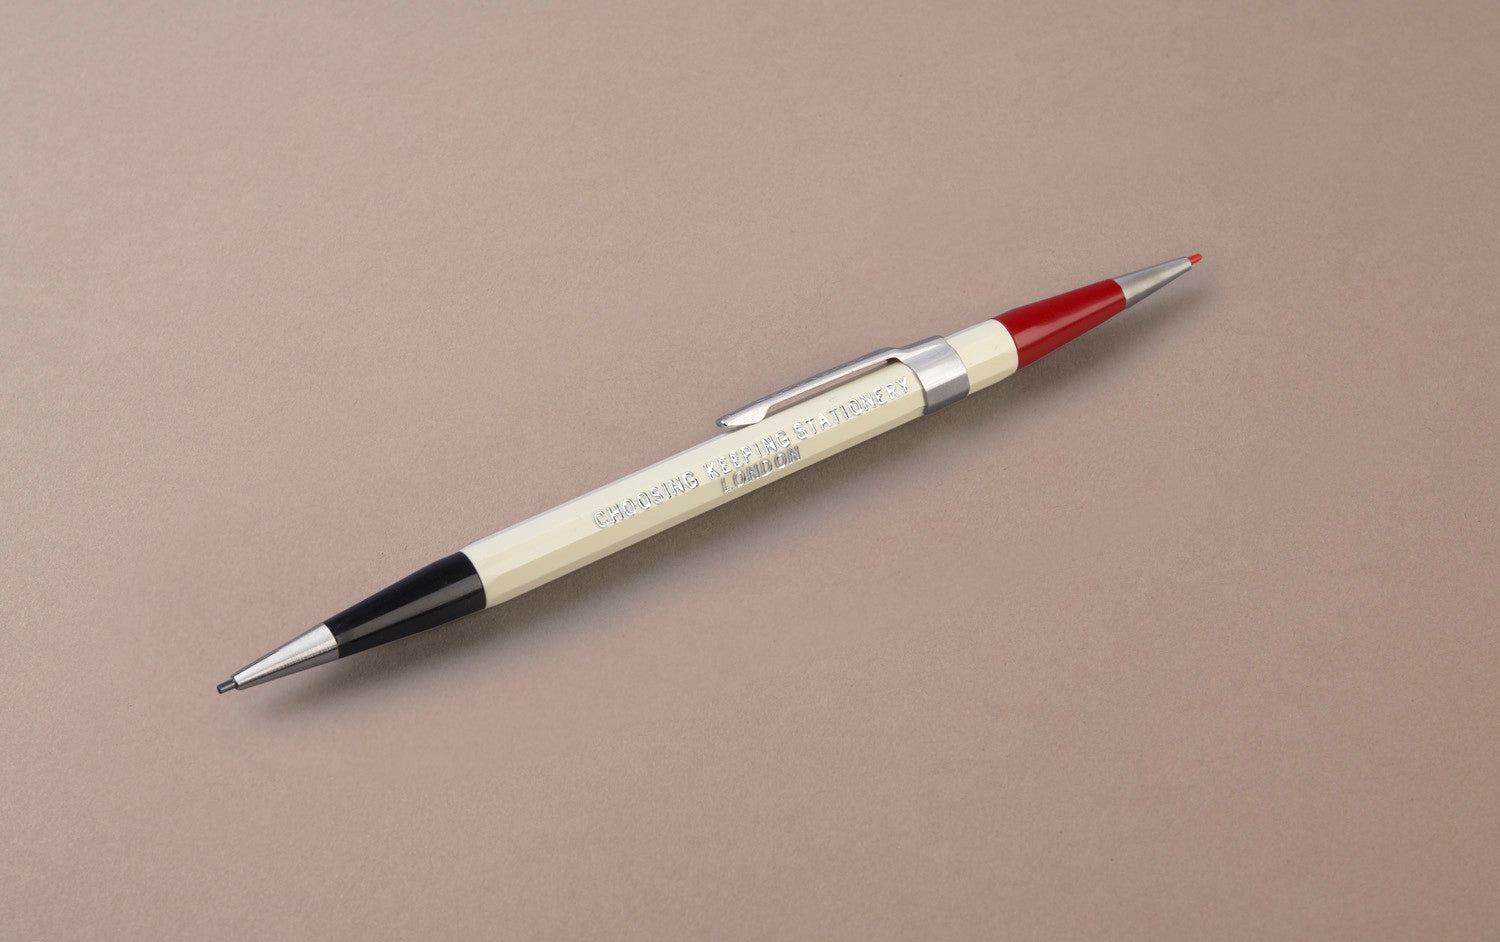 Ivory Choosing Keeping Twin 1.1mm Mechanical Pencil - Red and Graphite